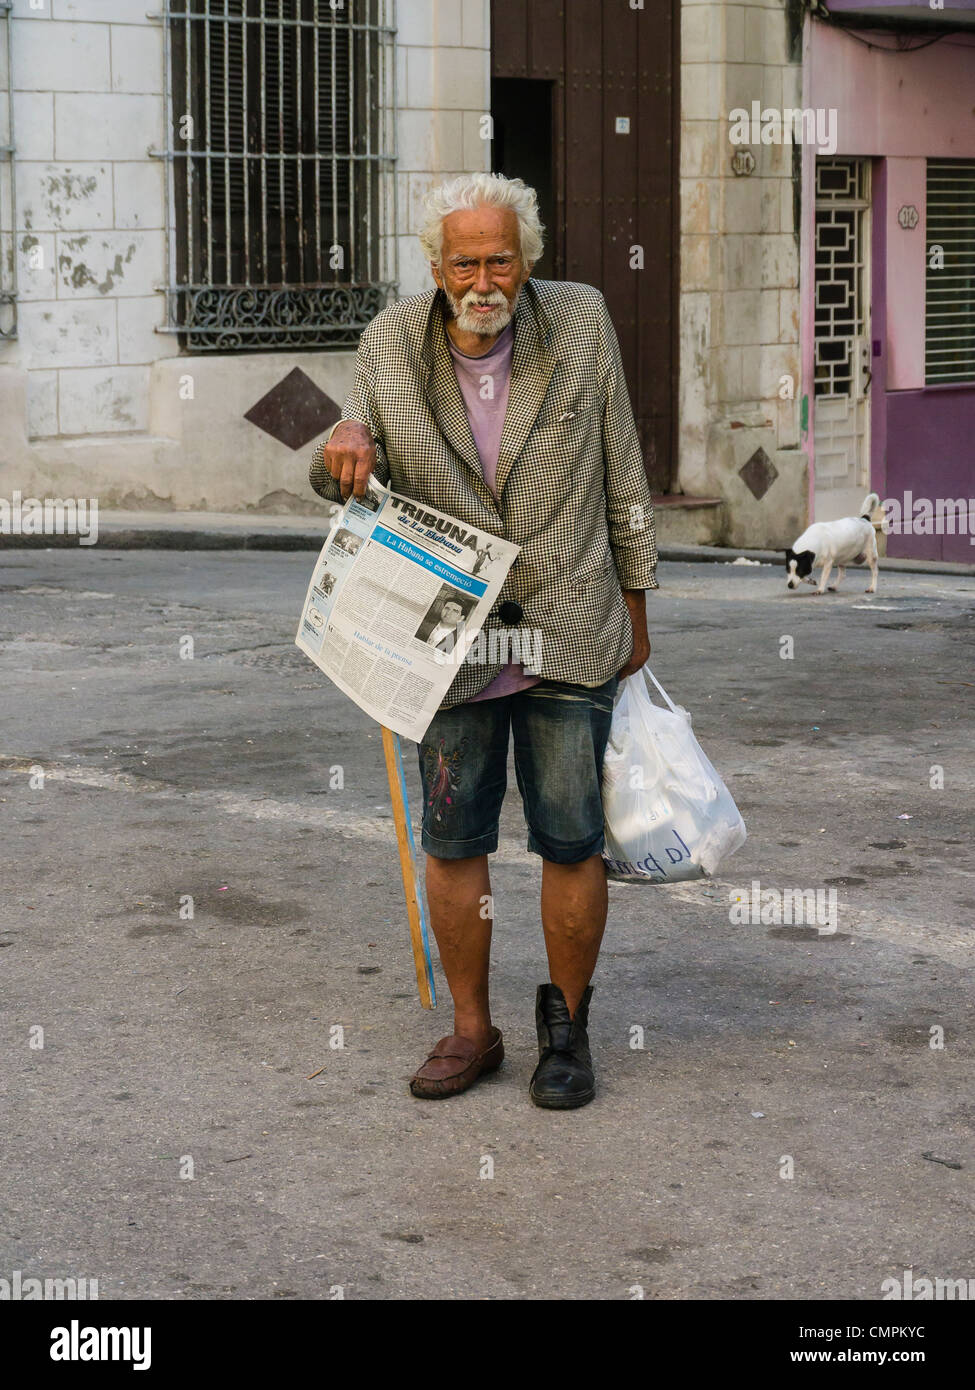 An elderly transient Cuban male walks the streets of the Havana Vieja section of Havana, Cuba with a dog in the - Stock Image